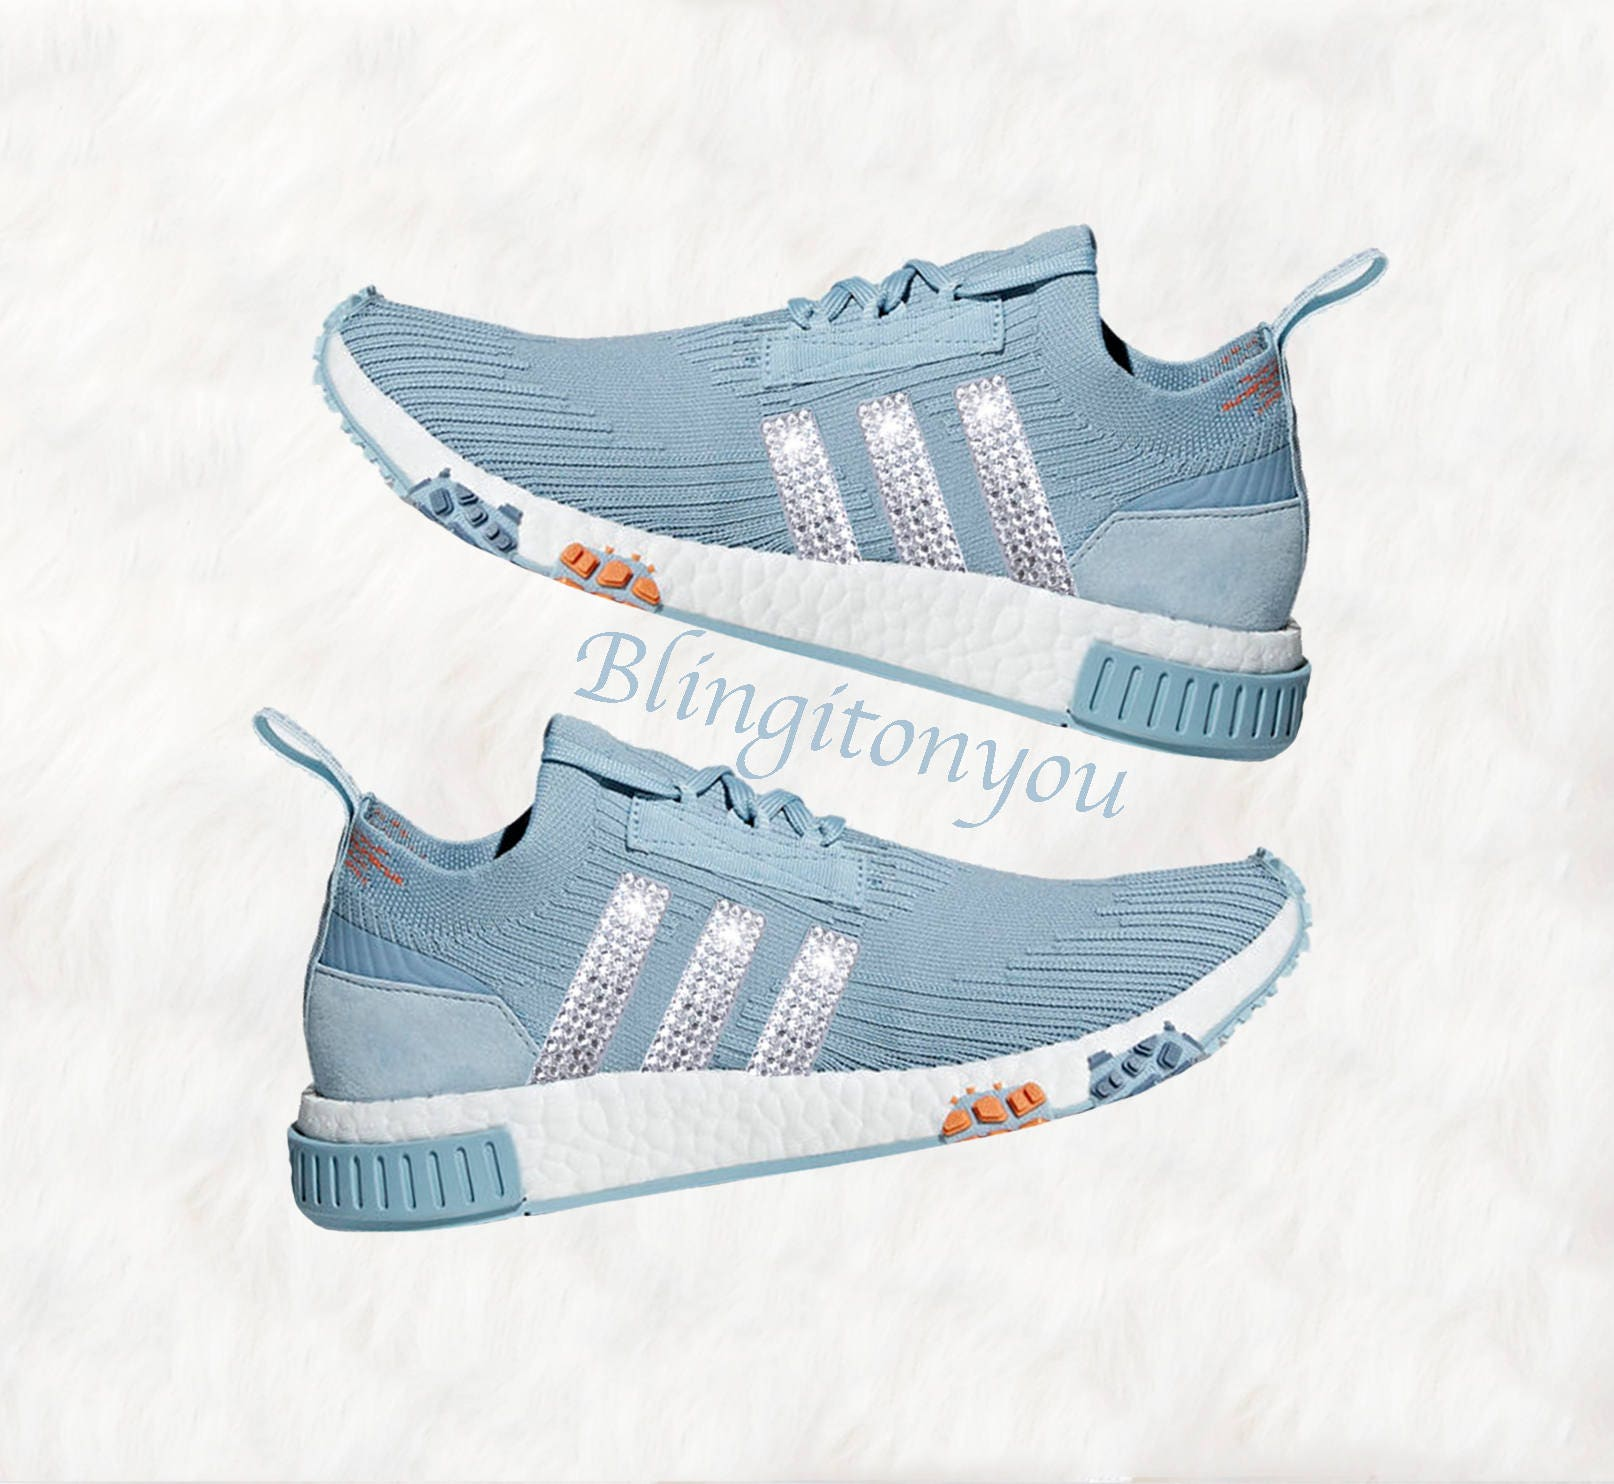 new product ea787 3c78a Bling Adidas NMD with Swarovski Crystals * Women's Originals NMD Racer  Primeknit Runners Casual Shoes * Blue